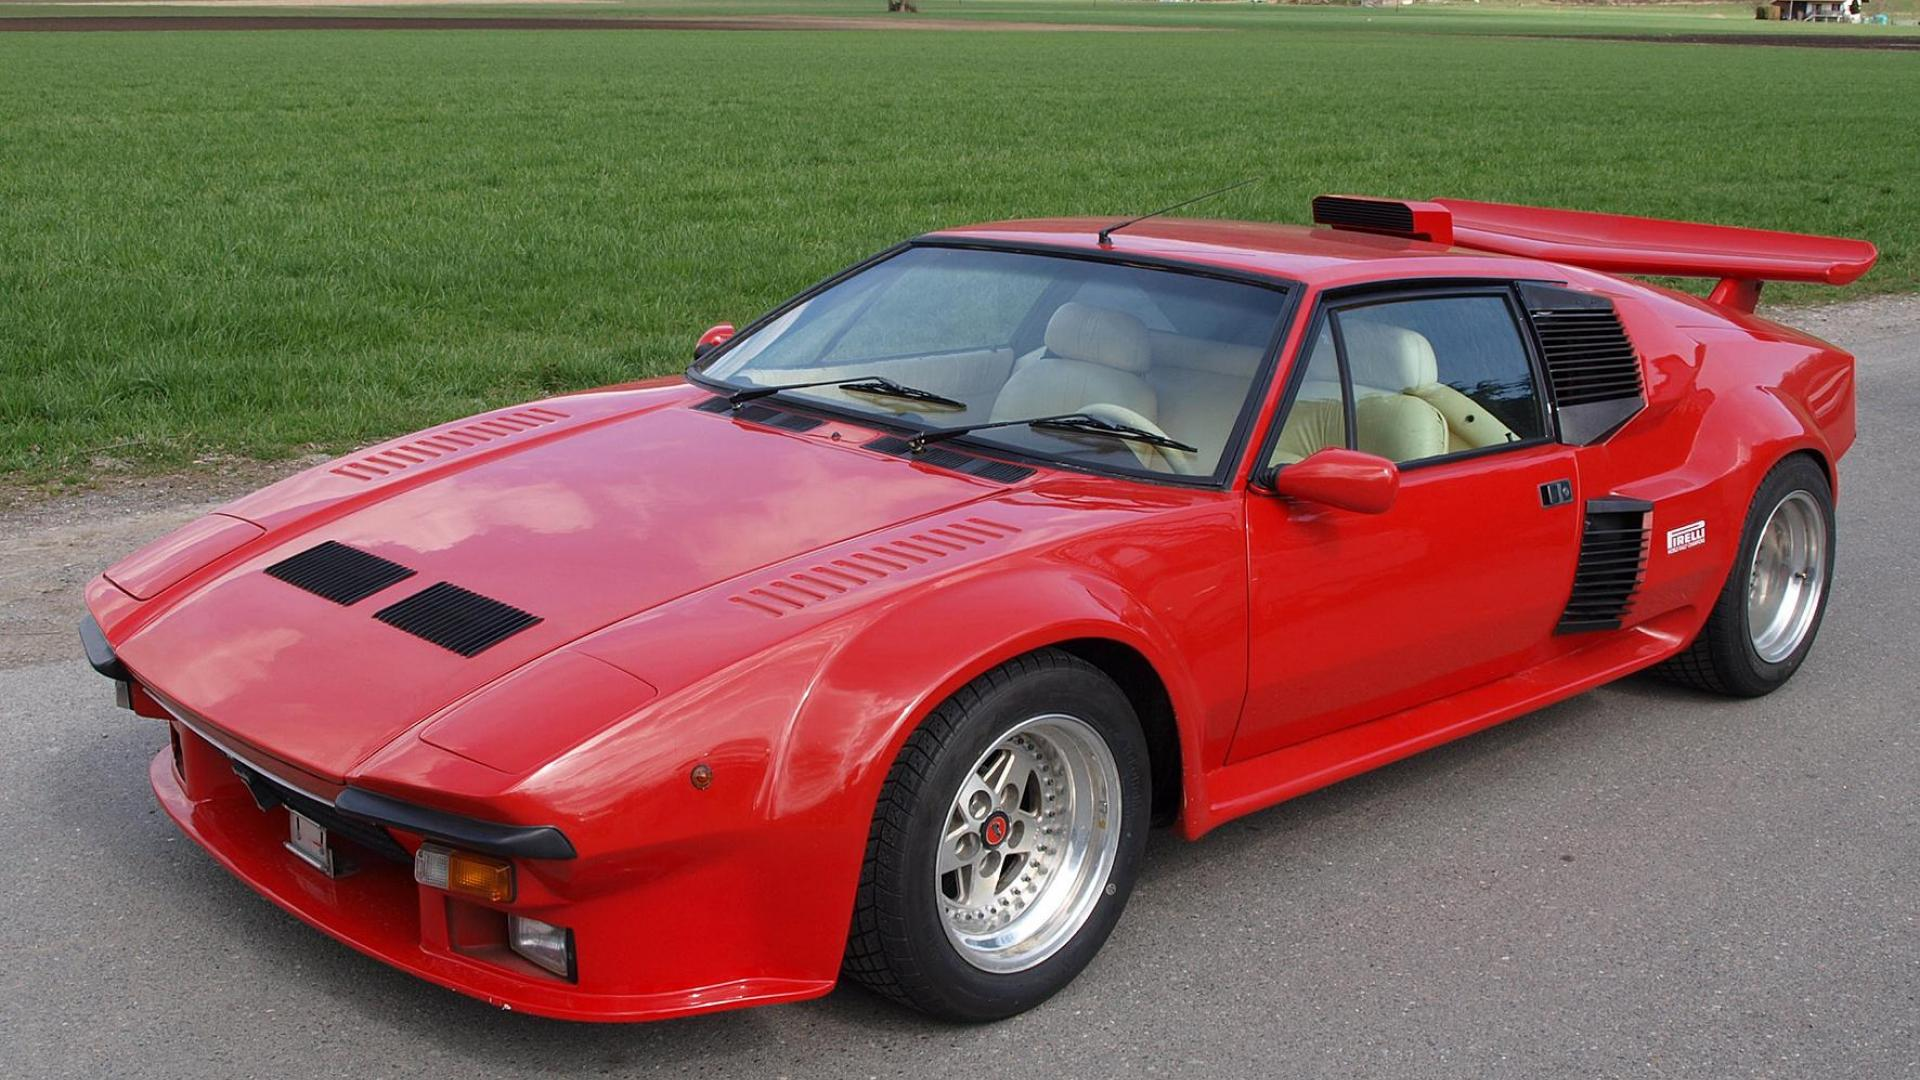 De Tomaso Pantera posters news and videos on your